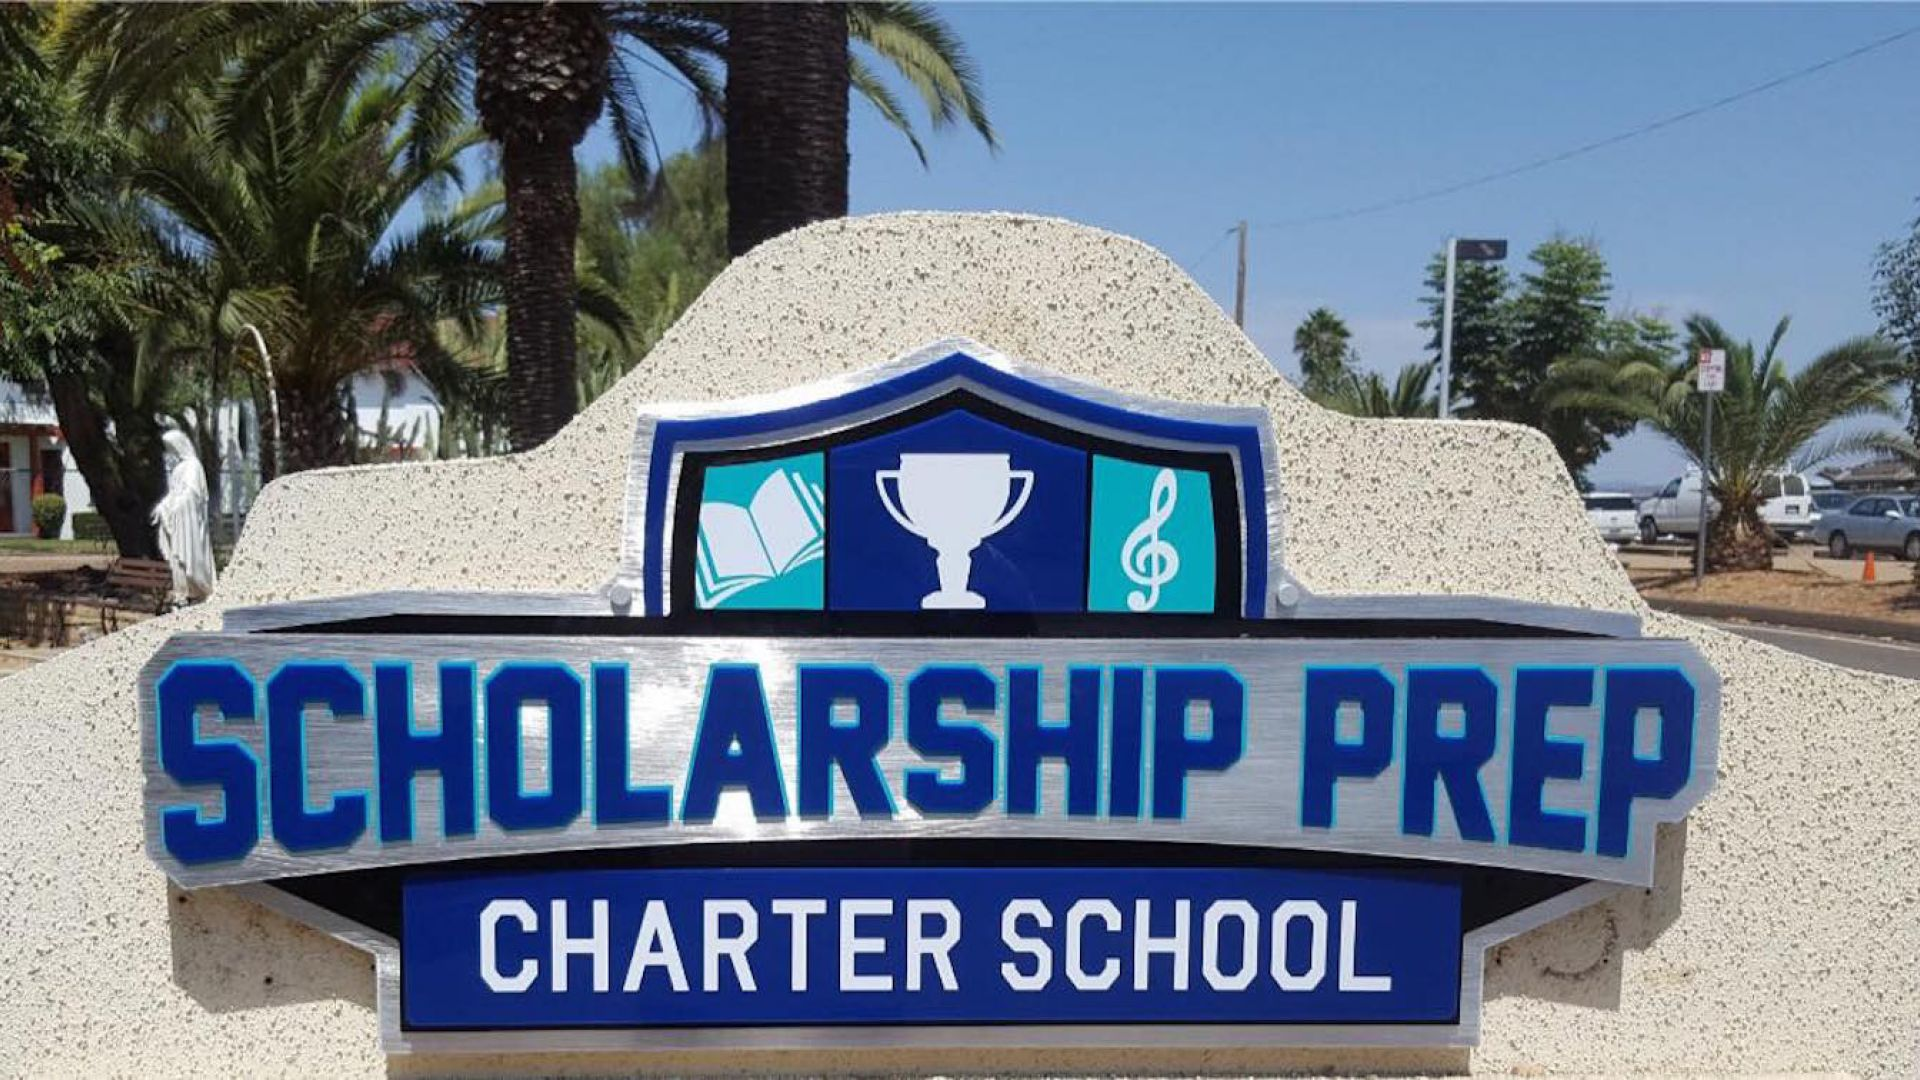 Scholarship Prep - Oceanside Gets A New Marquee